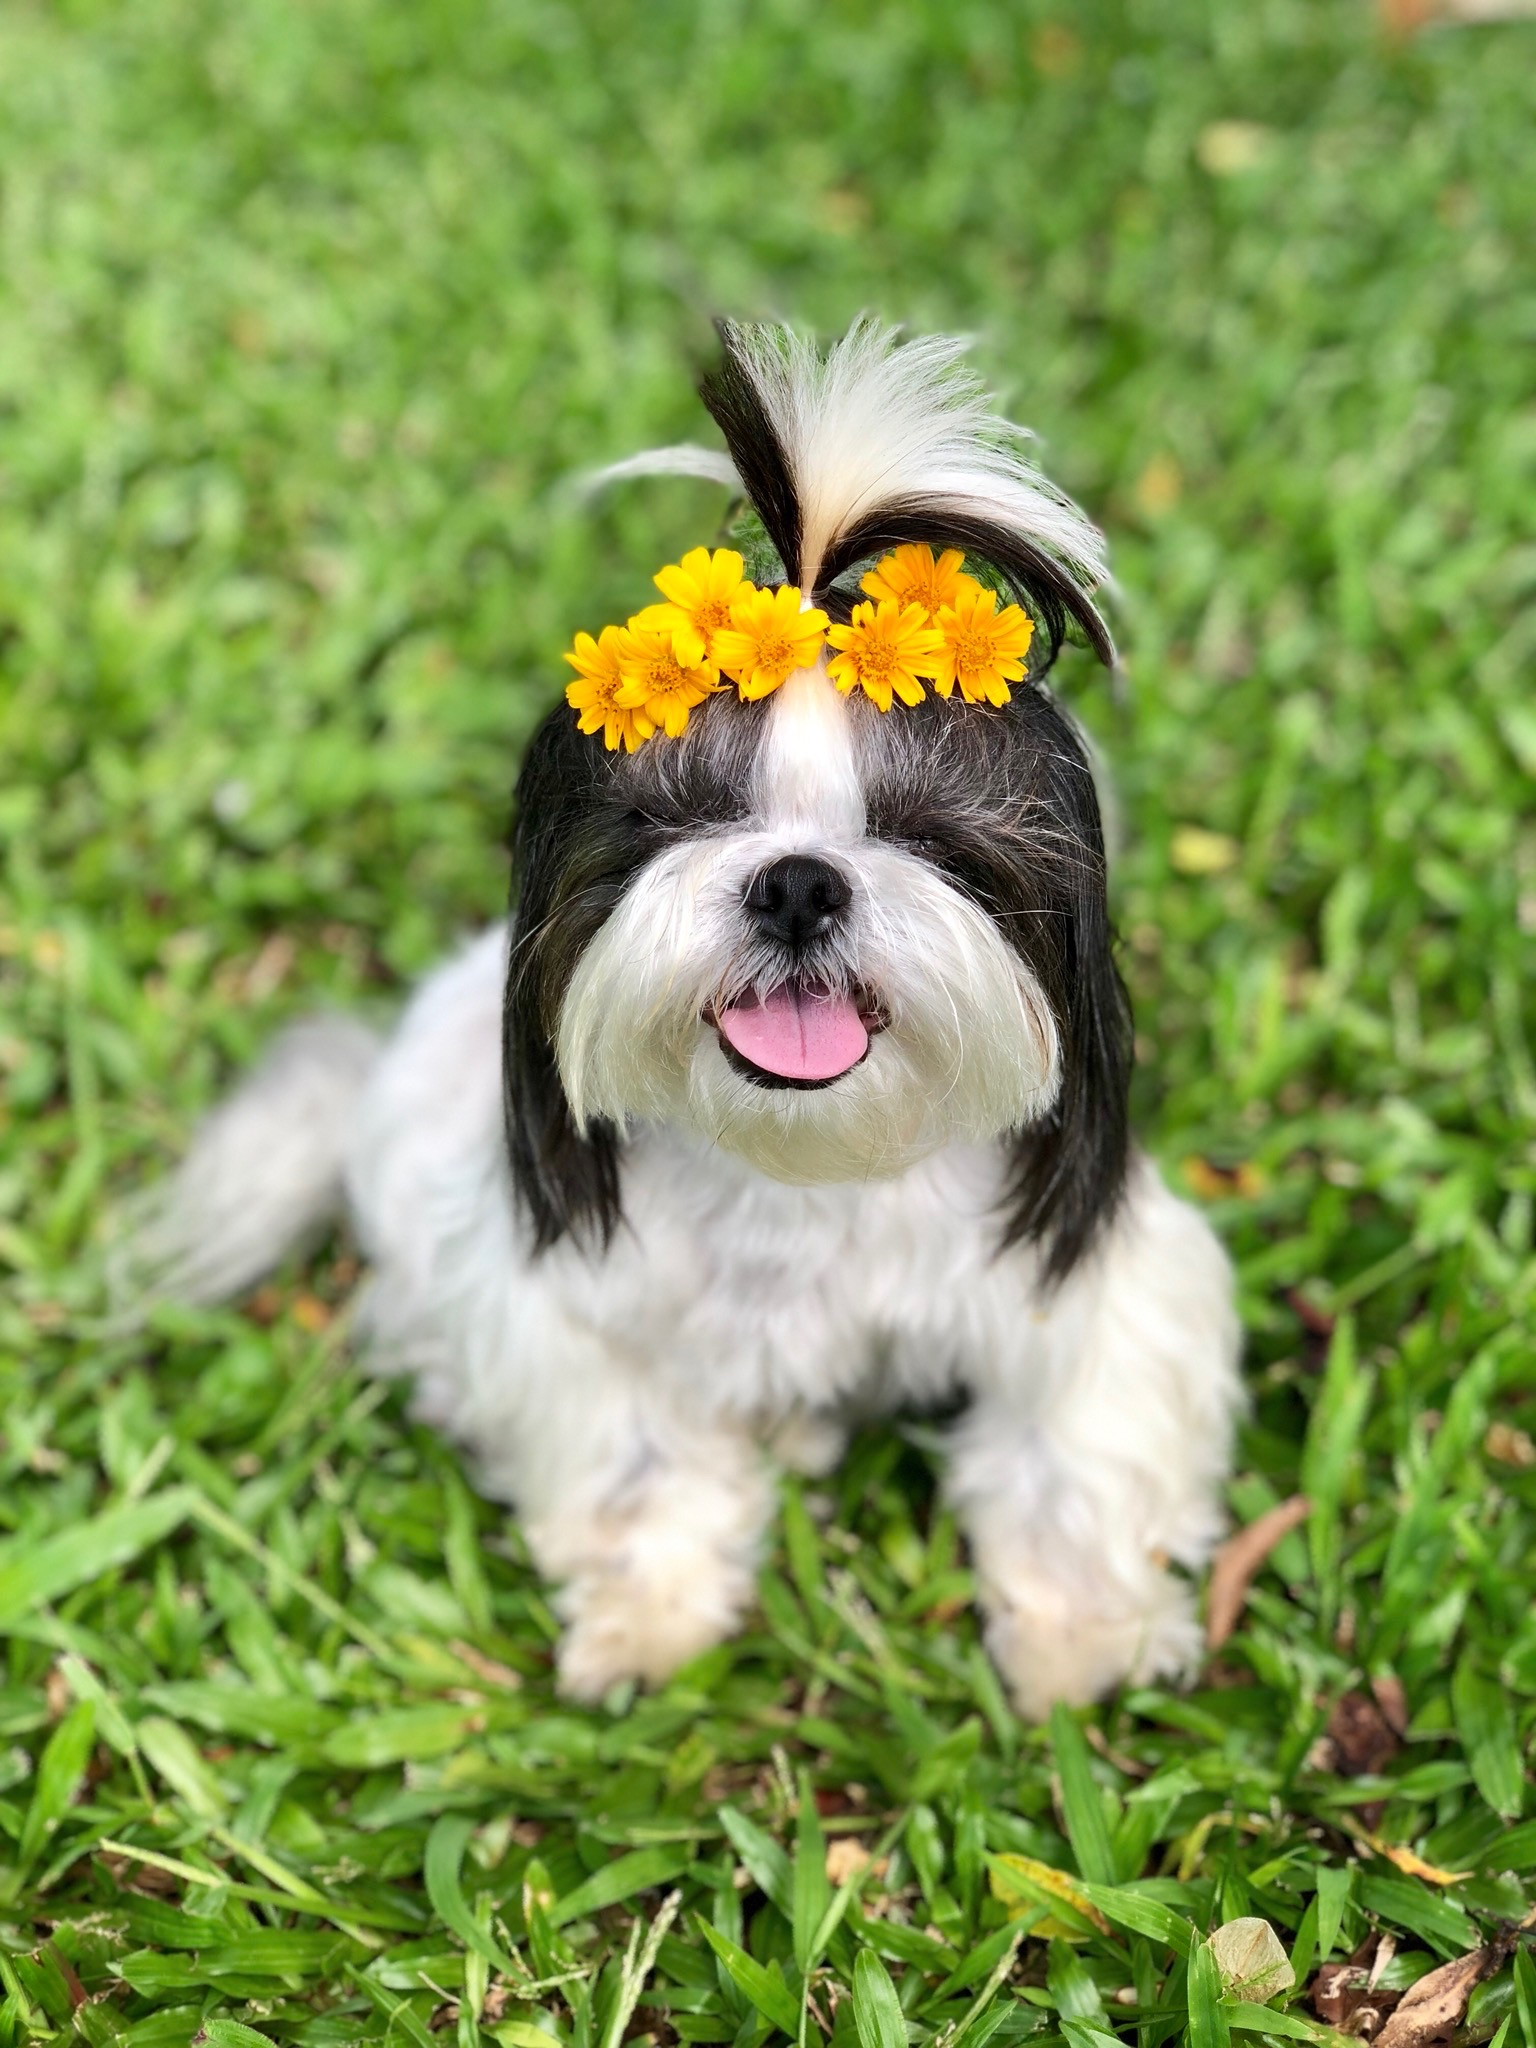 COOKIE: 8 yr old Shih Tzu. I'm from Wahiawa and I love to eat, play with my furiends at the dog park, dress up, accessorize and model for pictures.